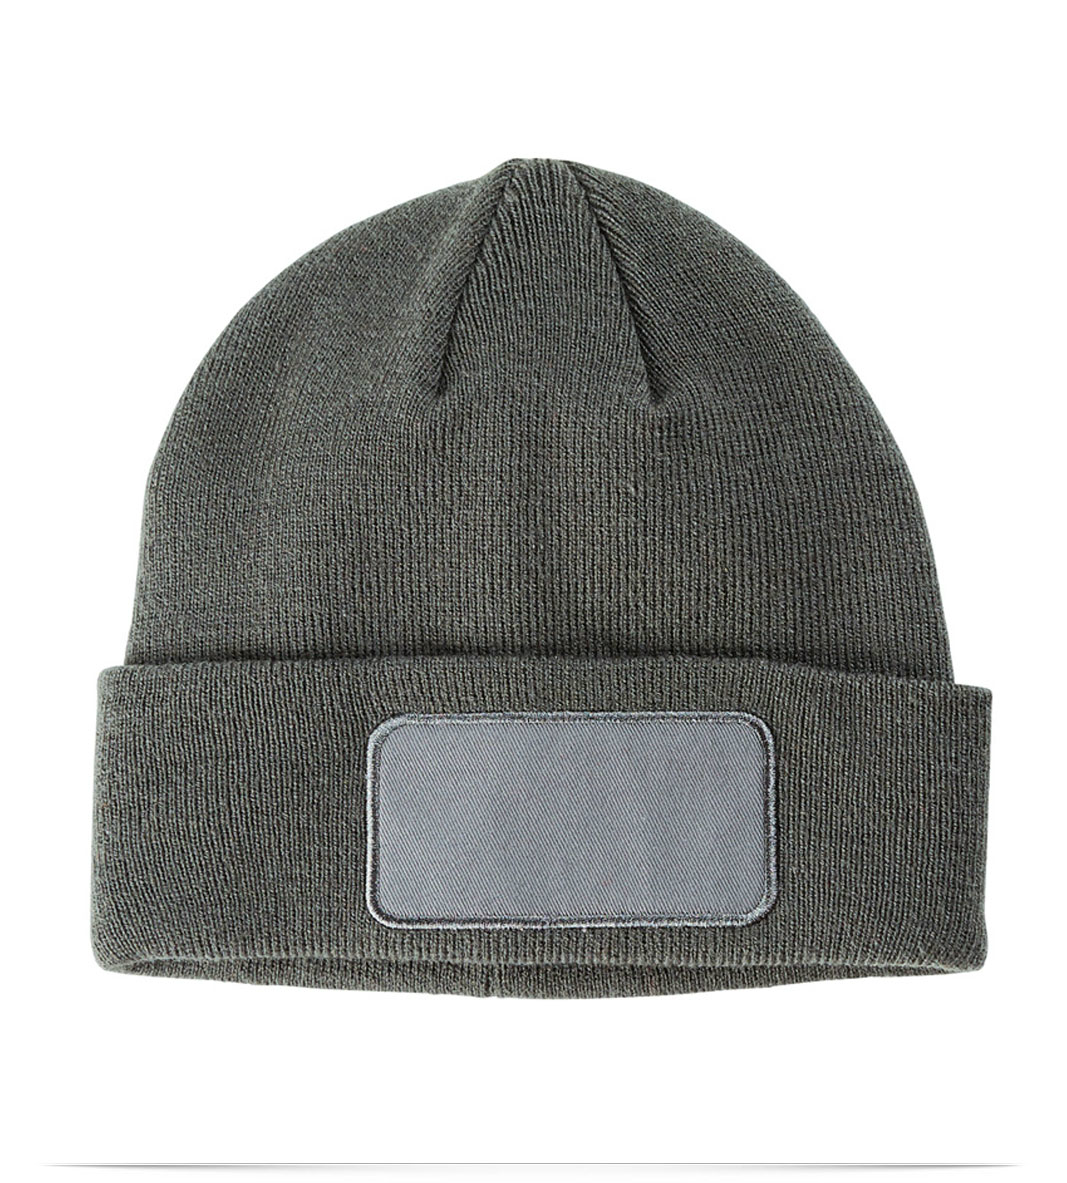 a80899174ab Custom Embroidered Big Accessories Patch Beanie Online at AllStar Logo